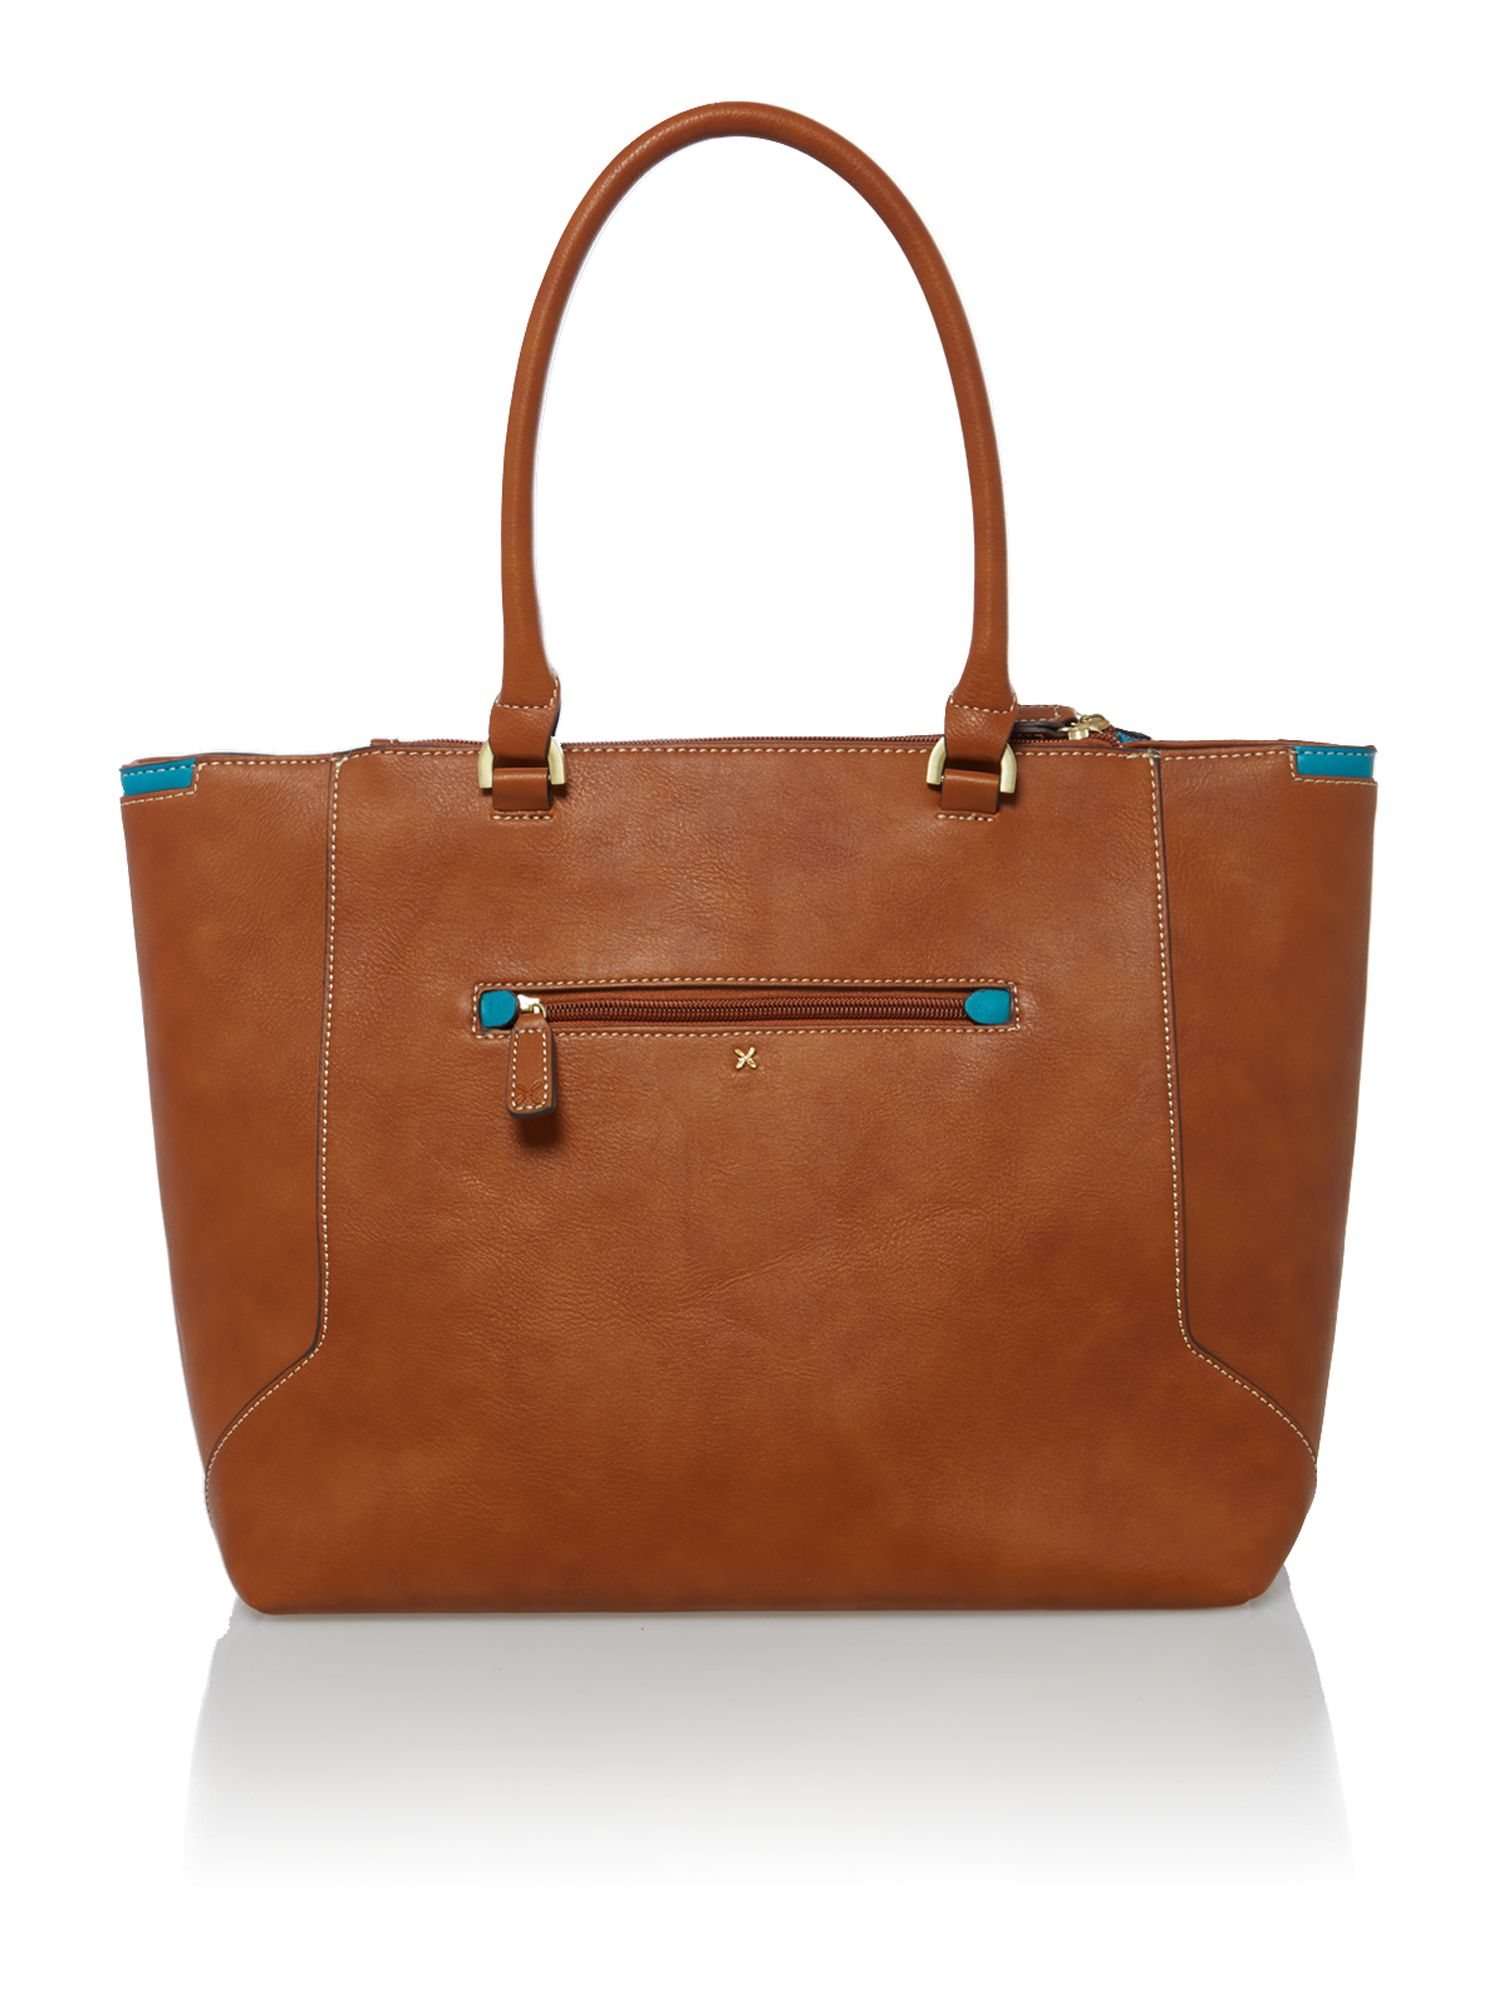 Paris tan tote bag